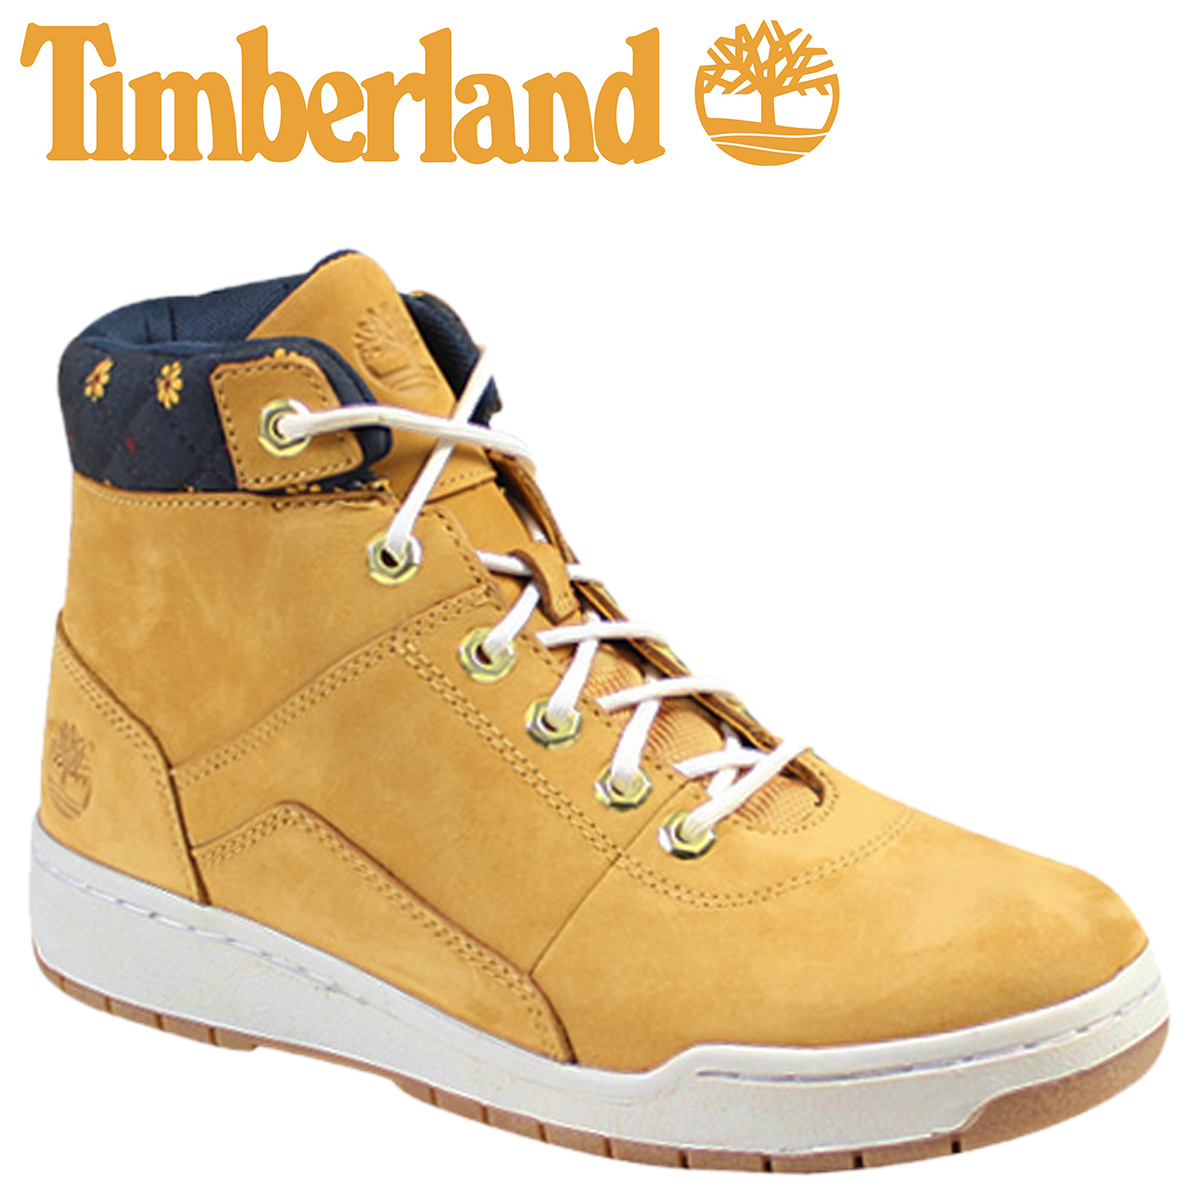 Sugar Online Shop  Timberland Timberland Bridgeton mid Zip Boots BRIDGTON  MID ZIP BOOTS leather mens Womens sneakers 6352A wheatgrass unisex  12   17  new in ... 4a3db7cd8f